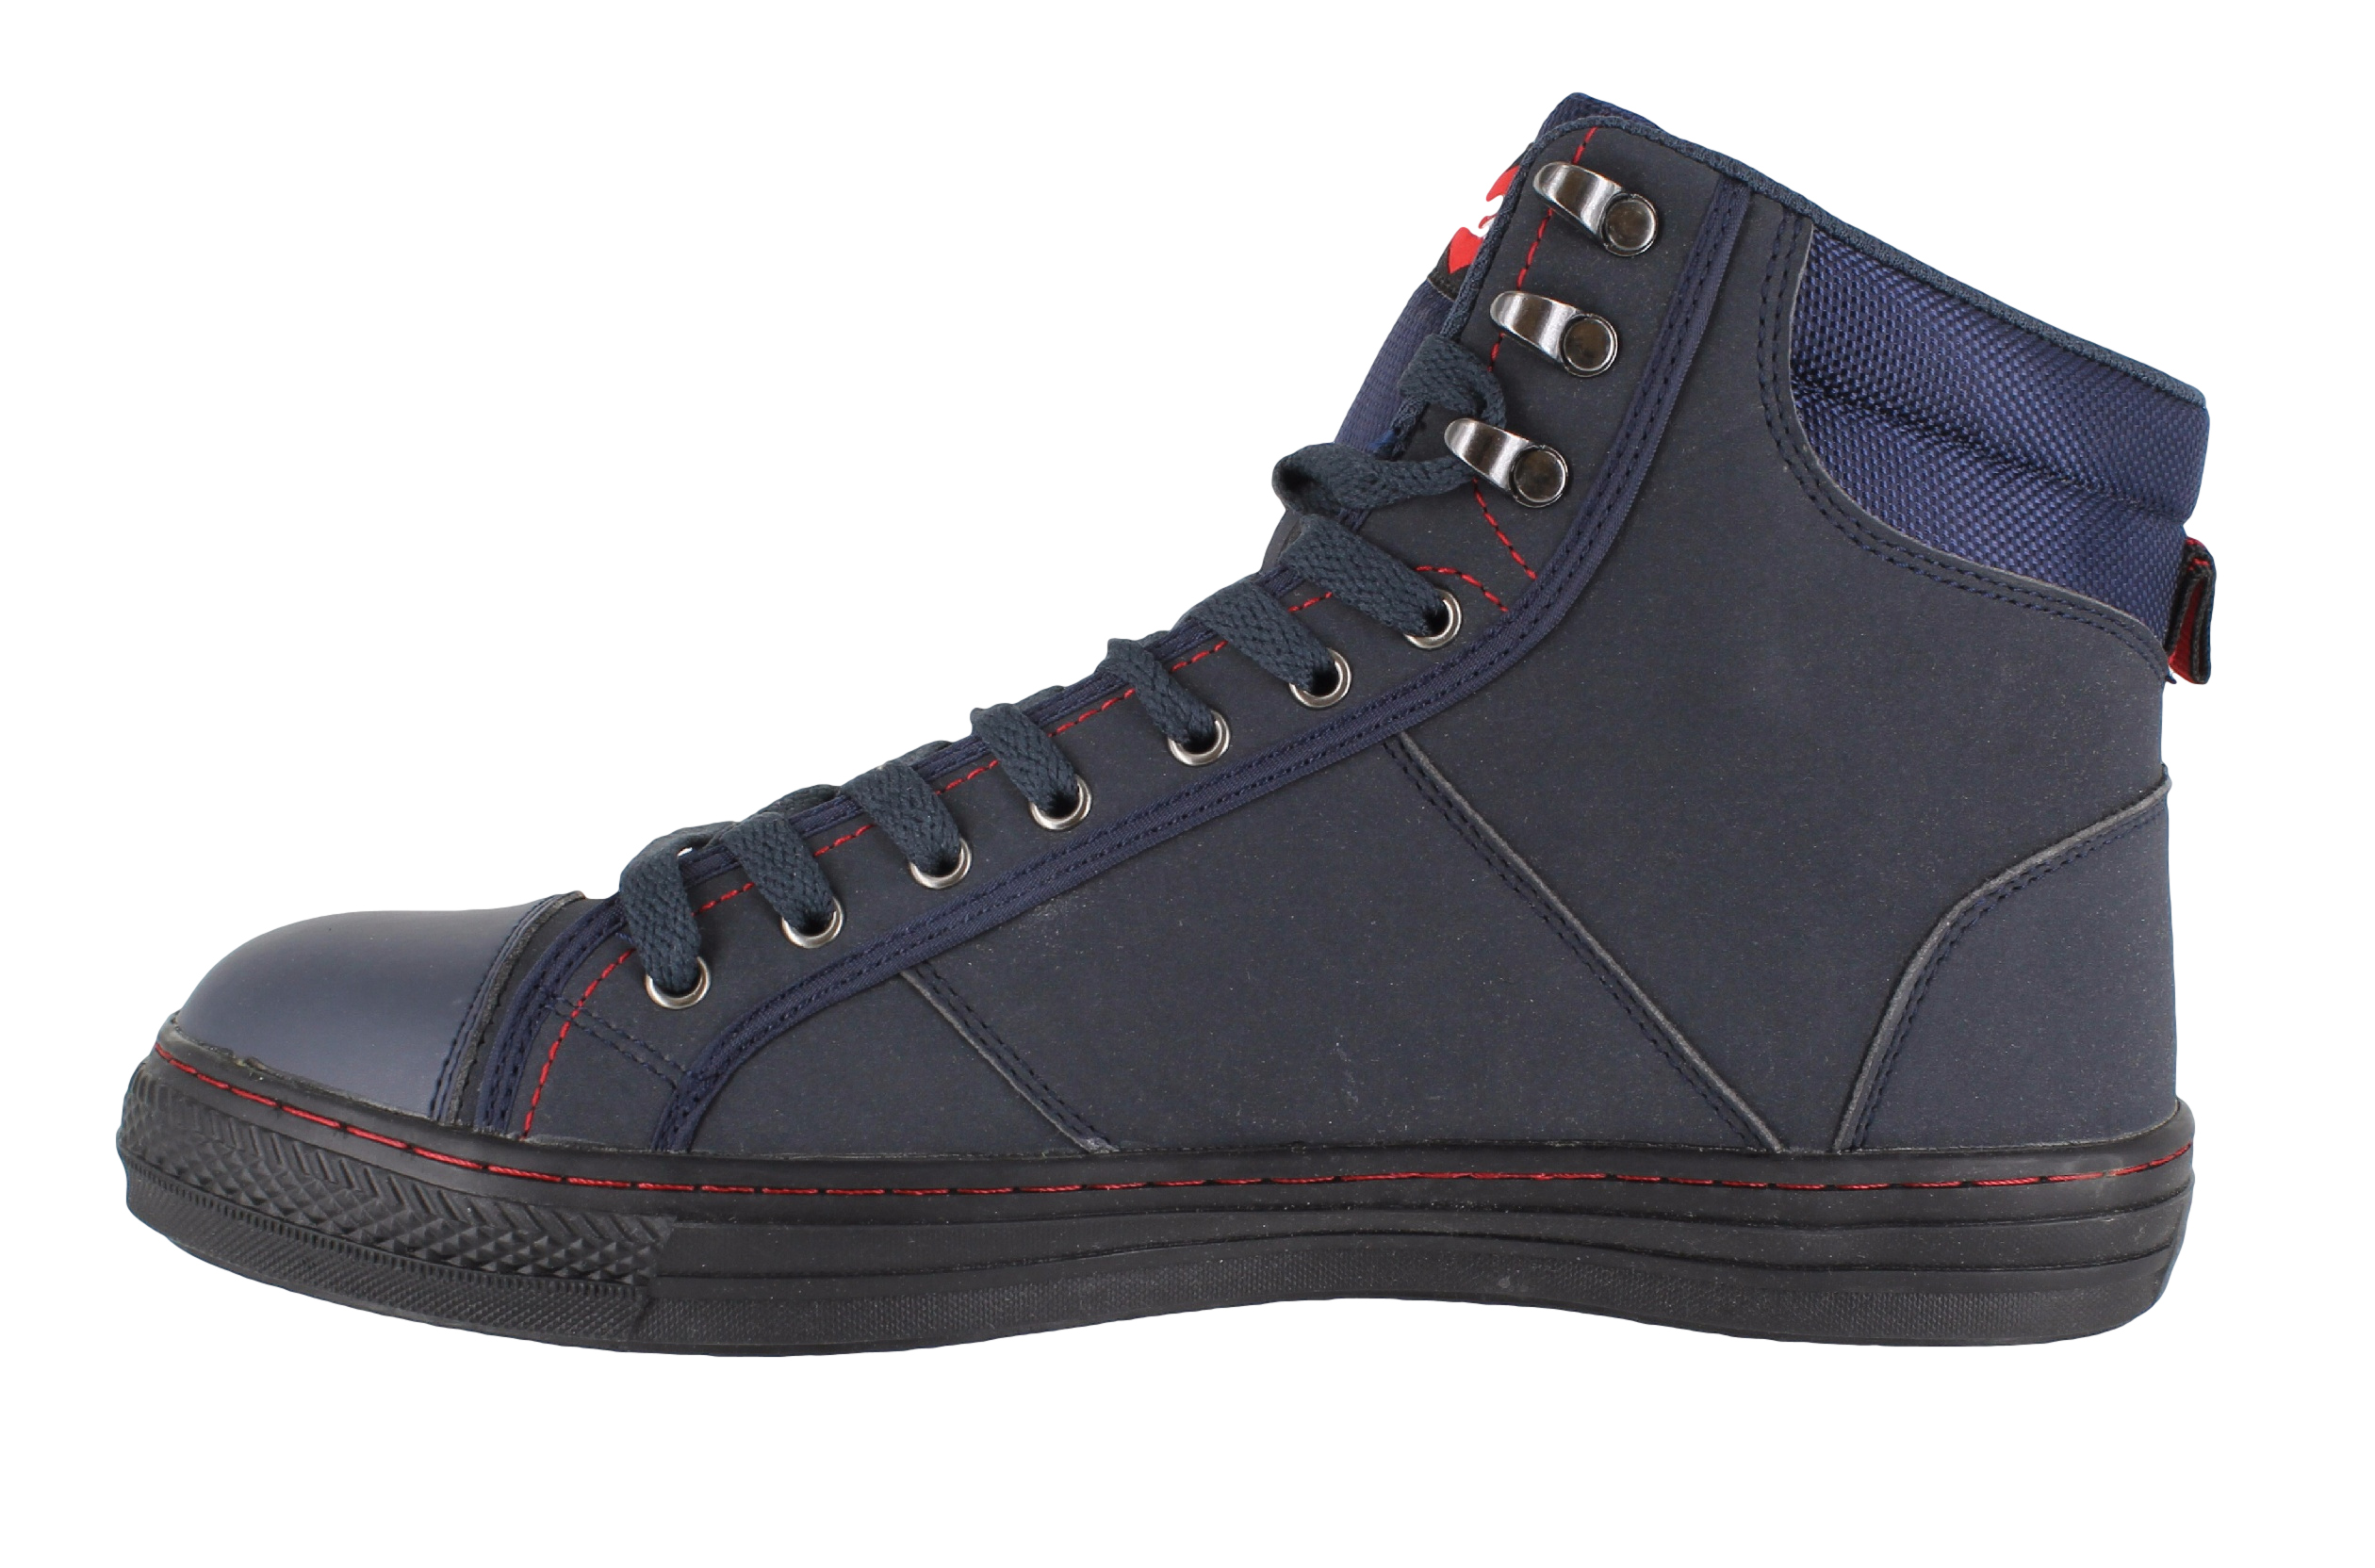 Mens Womens Lee Cooper Steel Toe SB Safety Baseball Boots High Top Sizes 3  to 12 cf8c979494